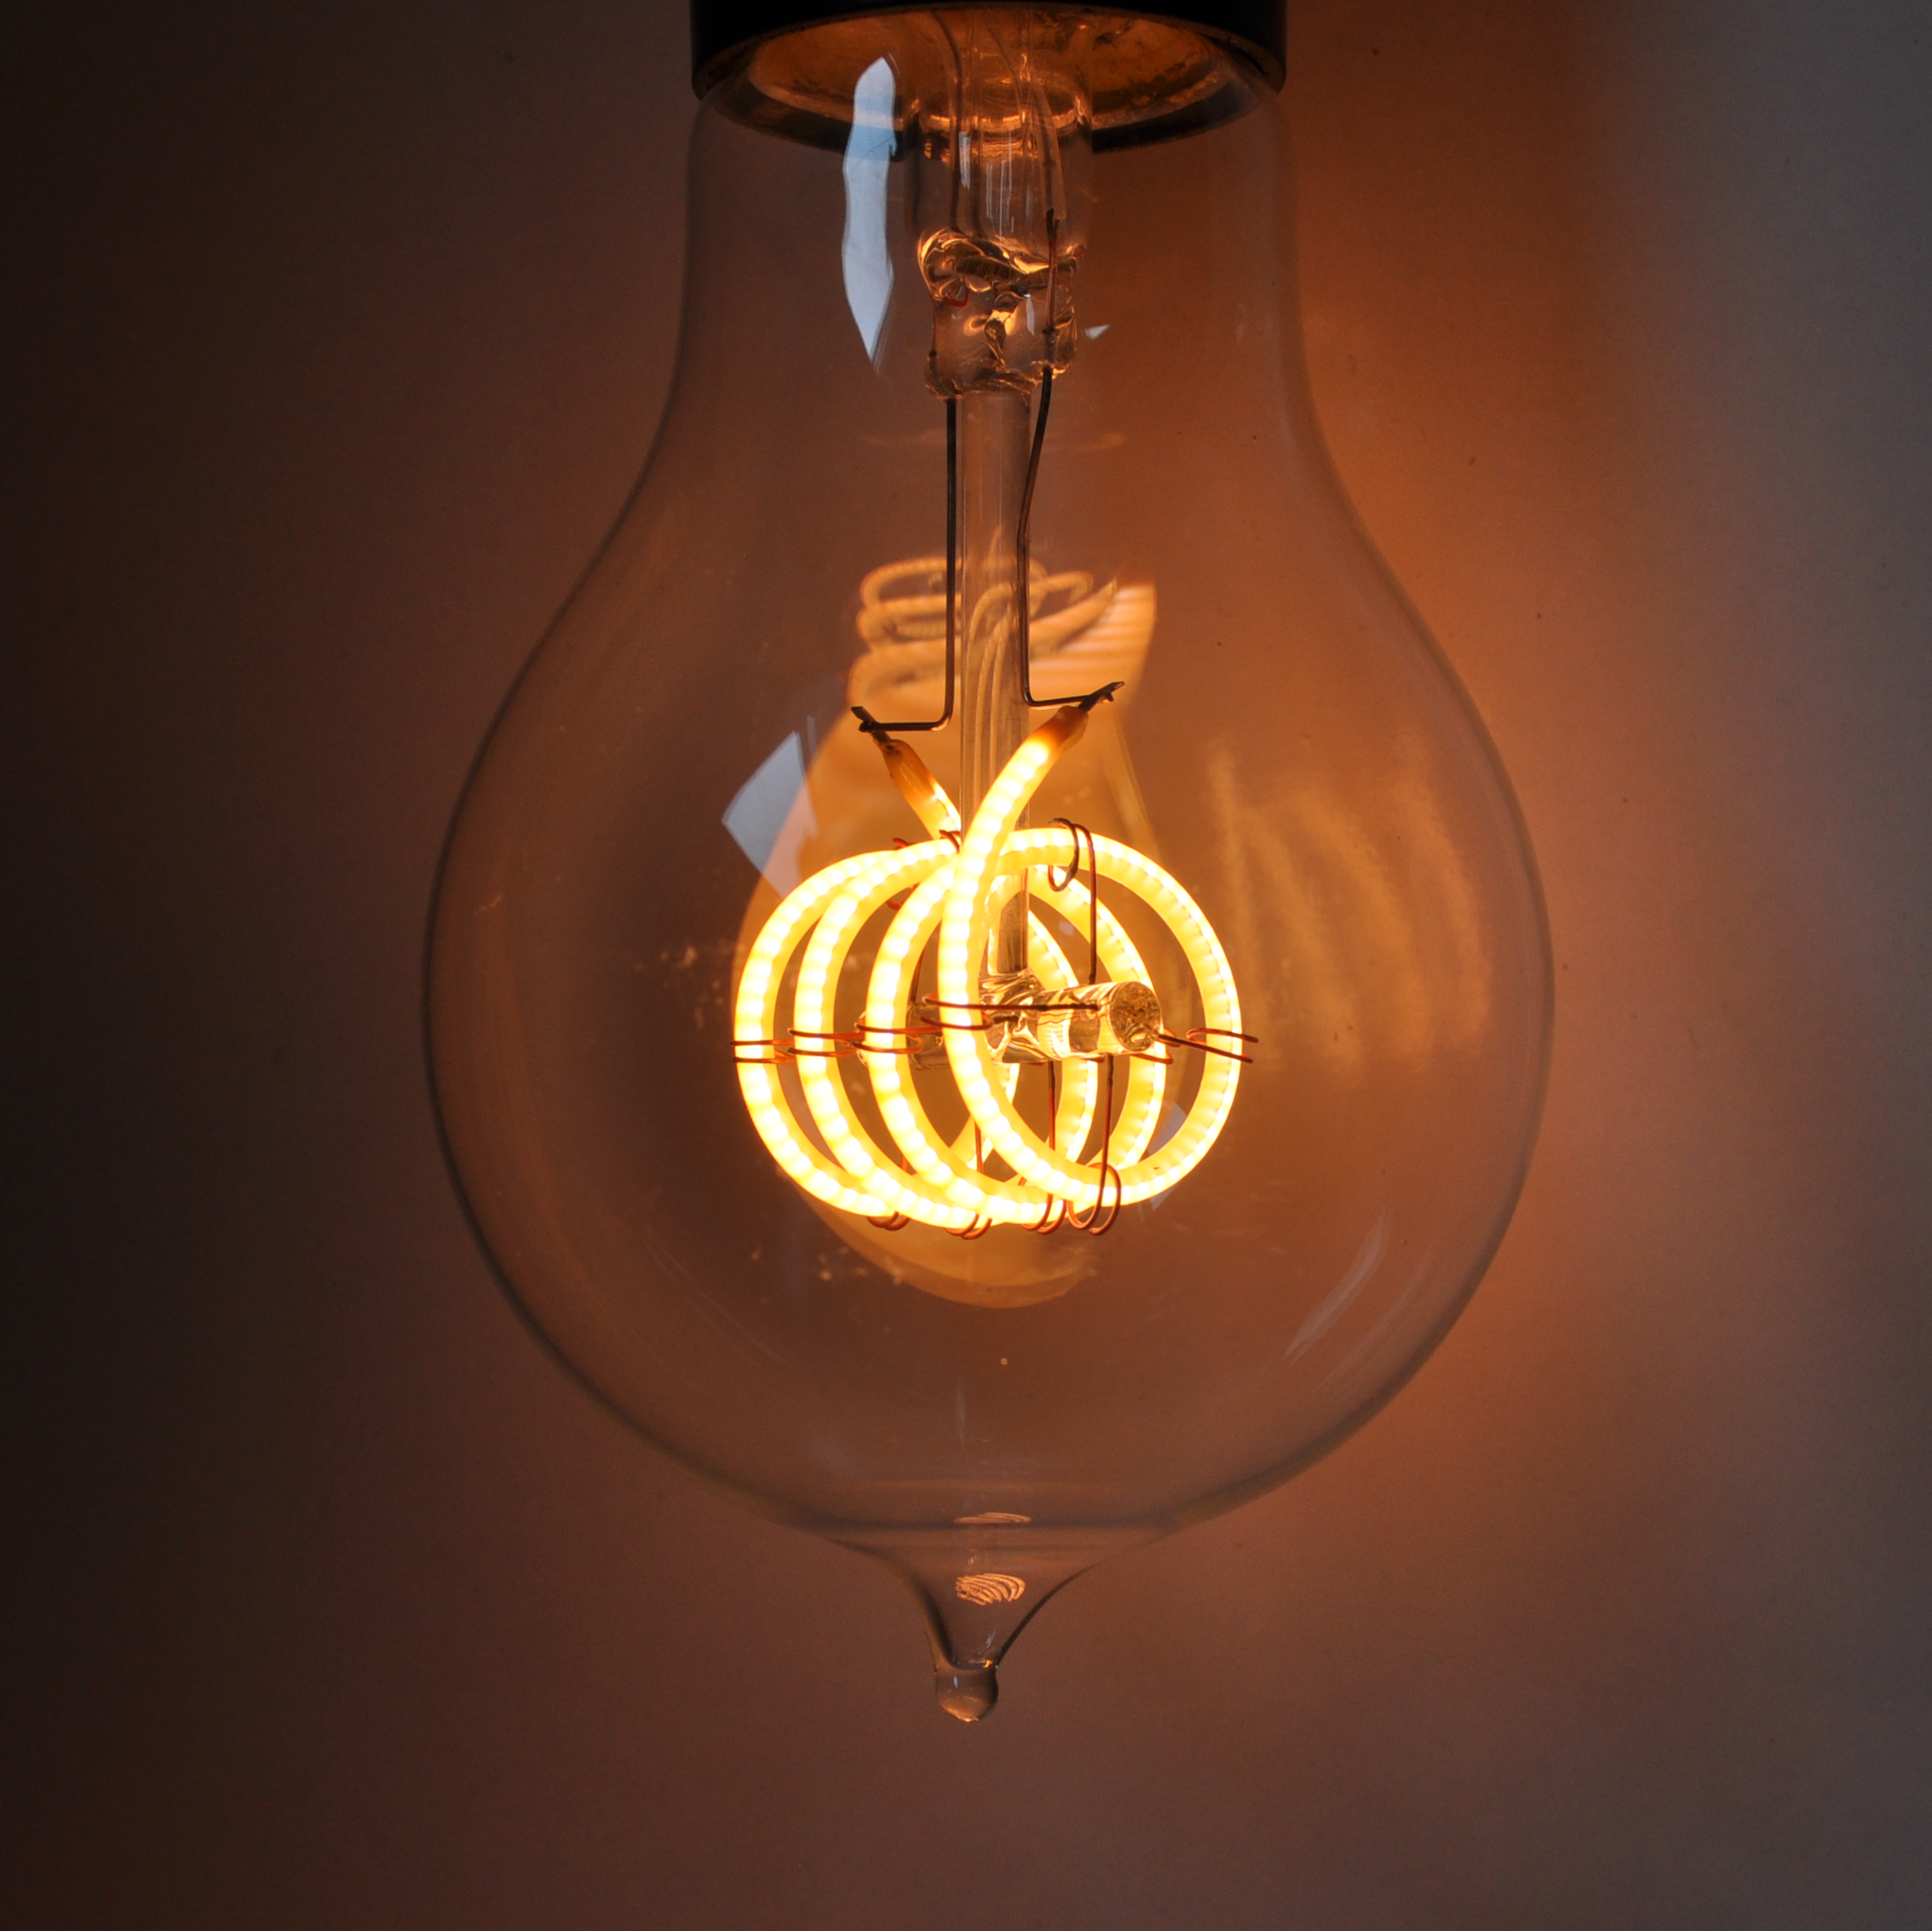 Our Led A19 Round Filament 3 Watt Led Light Bulb Includes One Led A19 240mm Round Filament Light Bulb Standar Edison Light Bulbs Bulb Filament Bulb Lighting